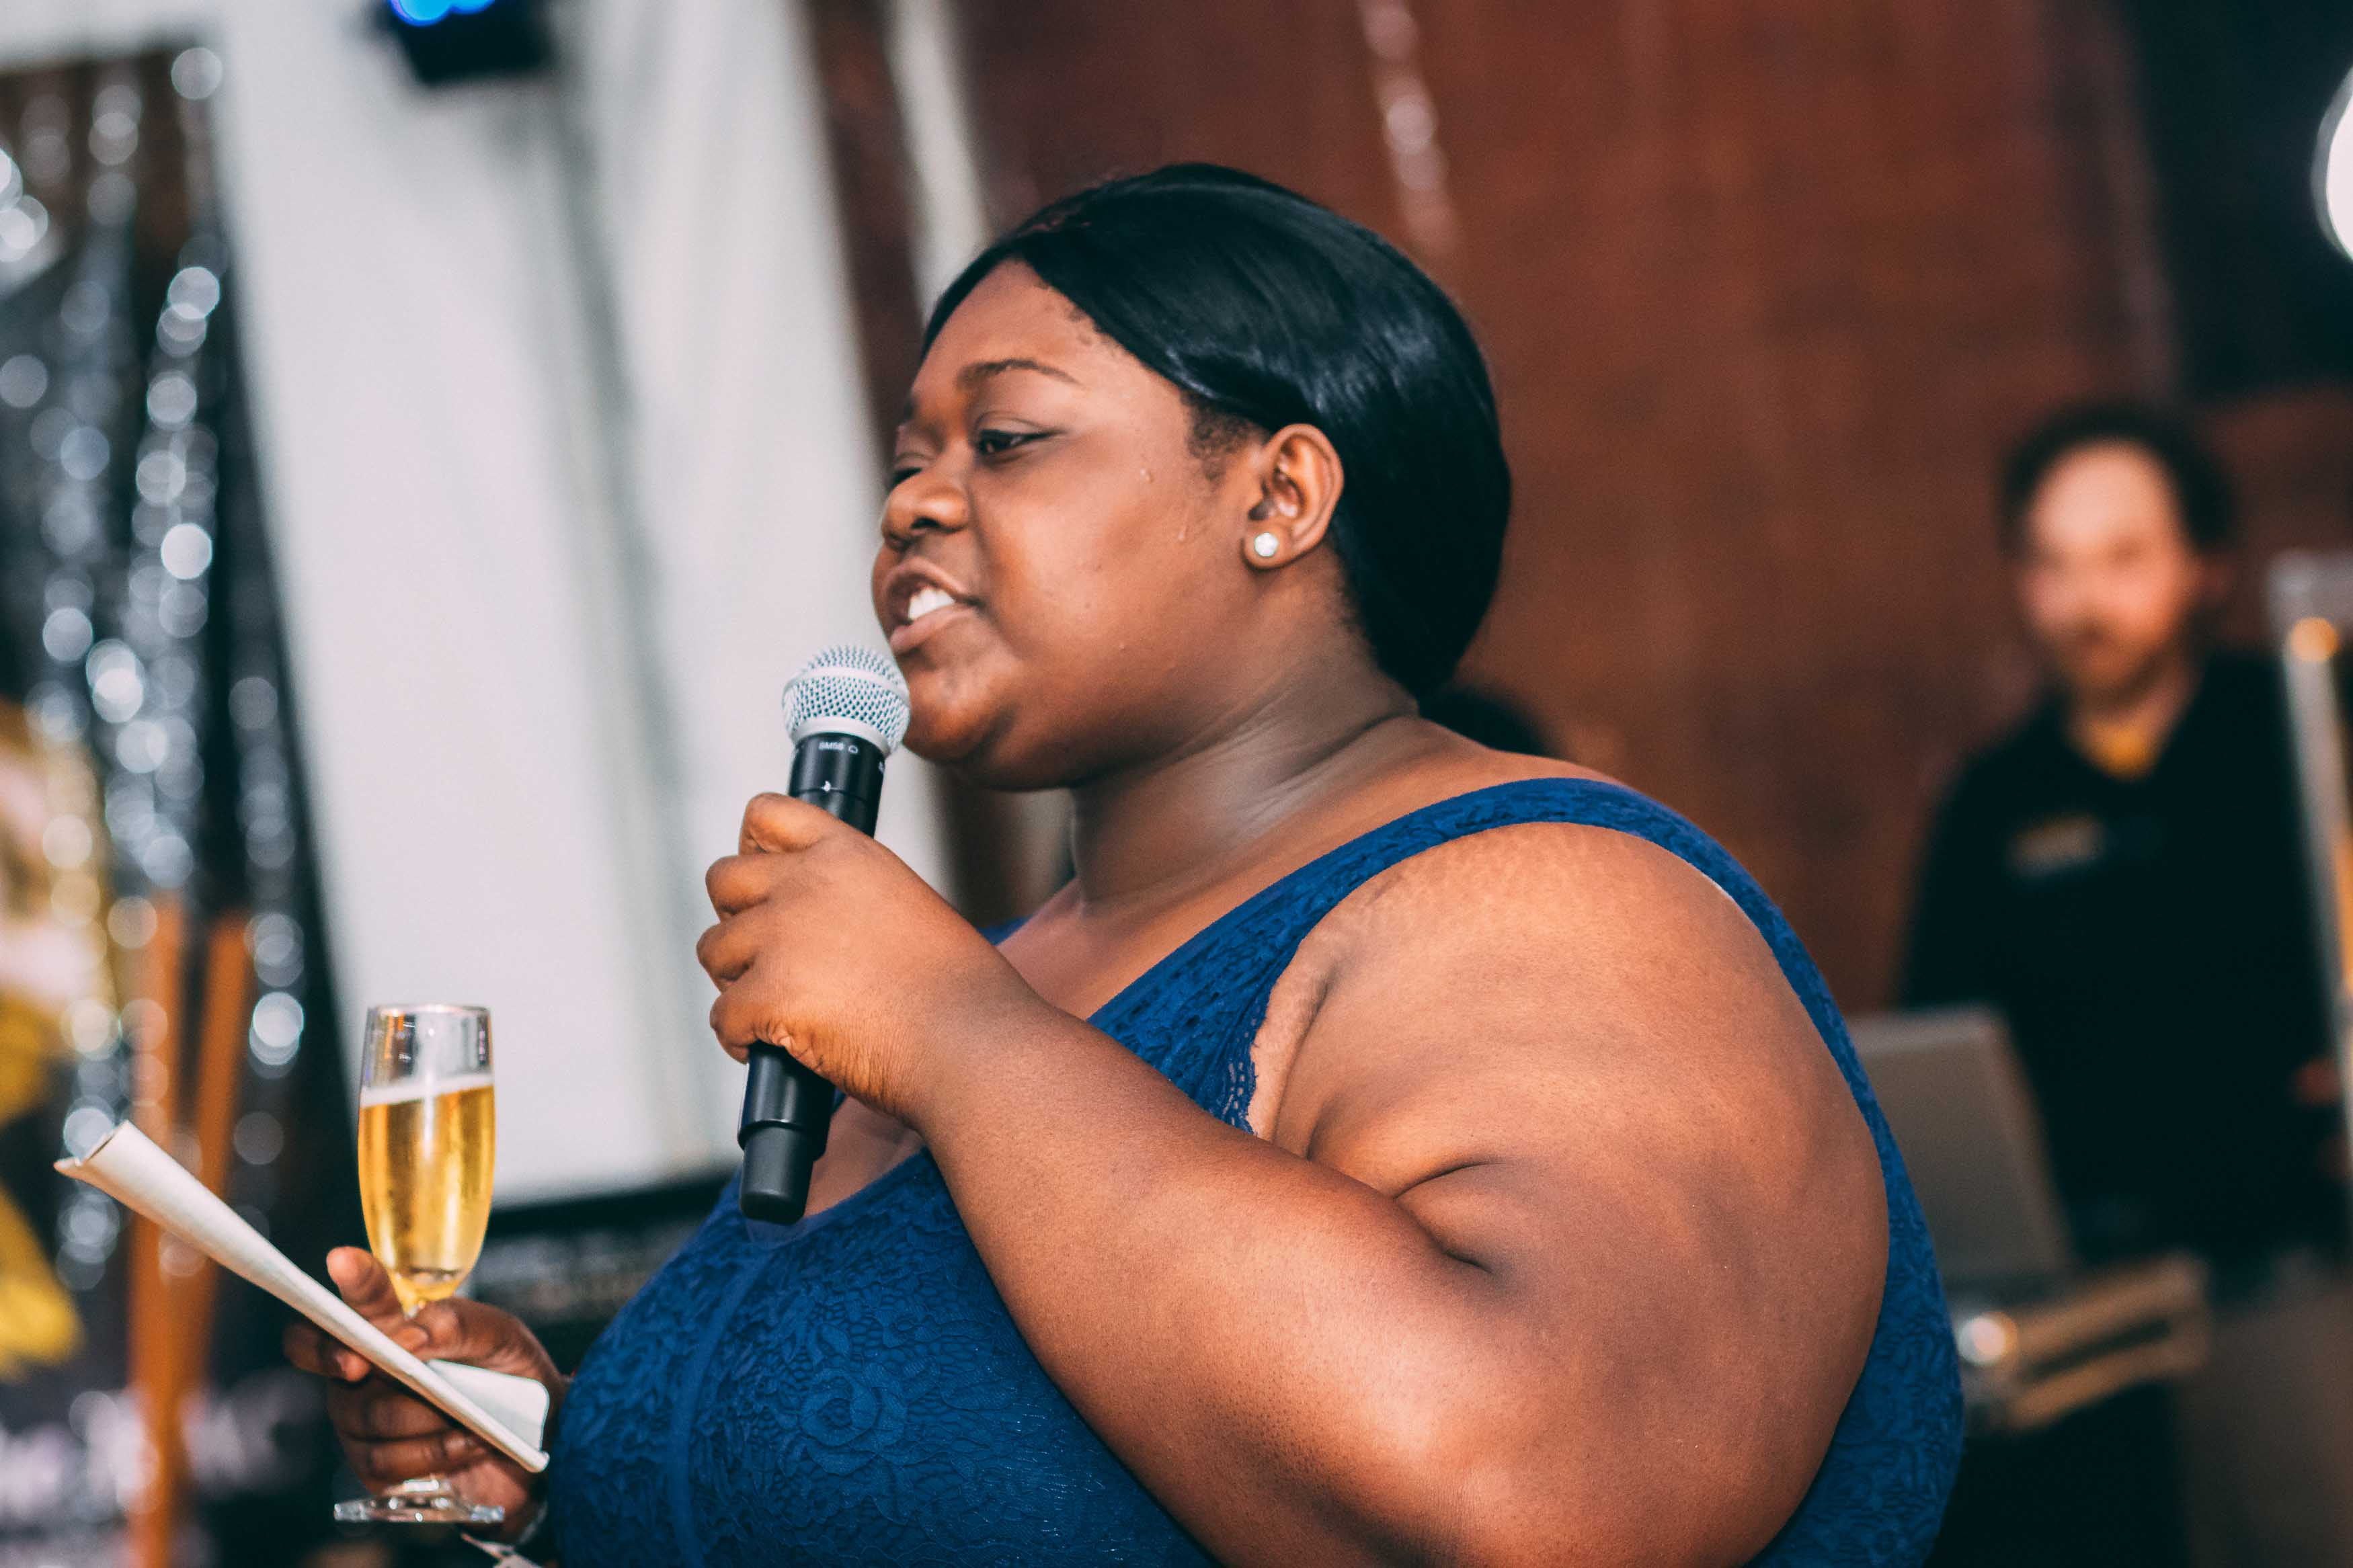 Woman gives speech mic in one hand and paper and wine in the other